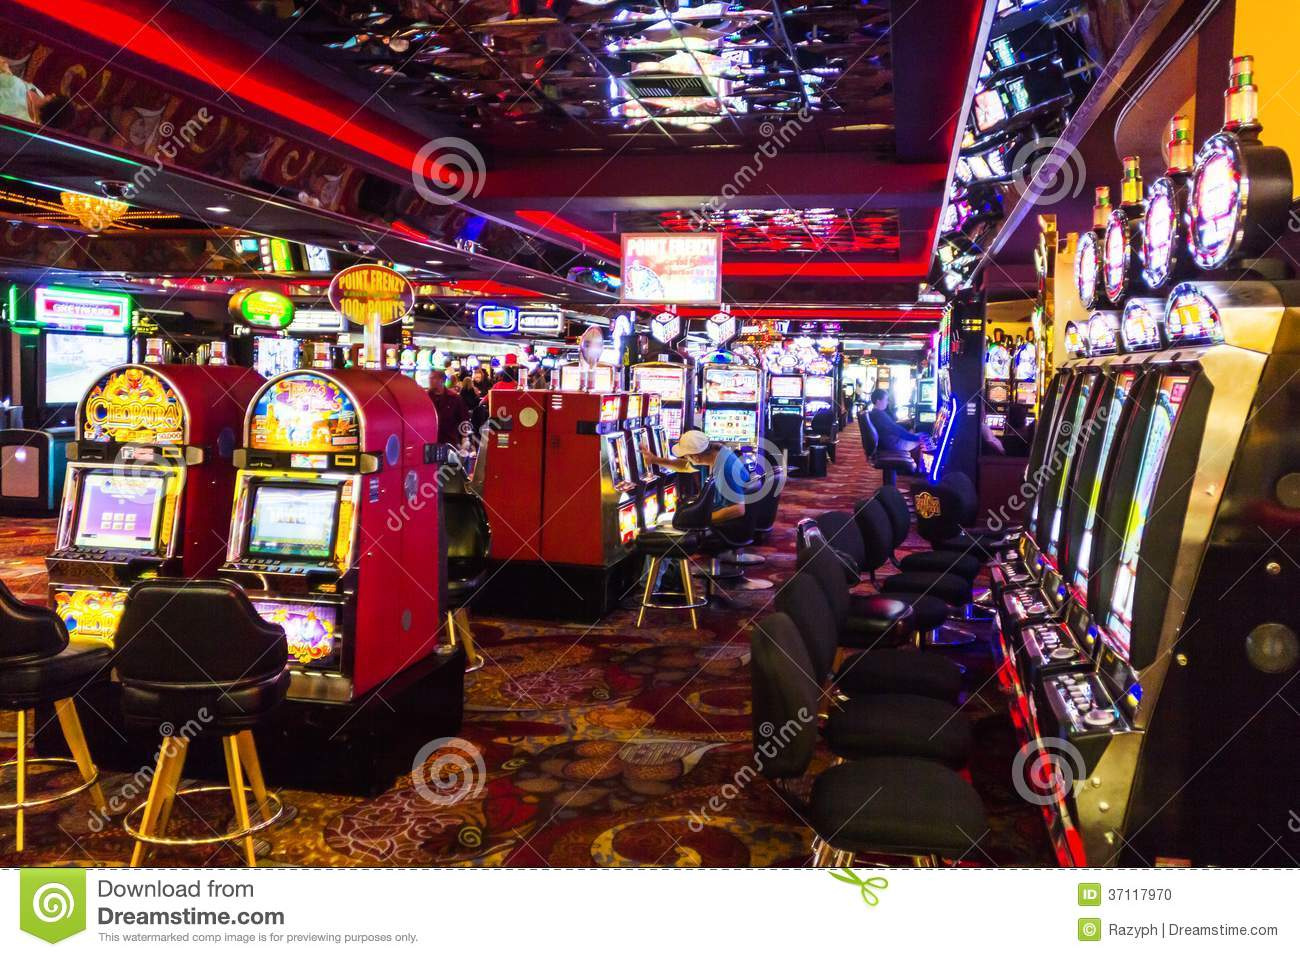 casino-royale-s-slot-machines-las-vegas-nv-usa-july-people-playing-machine-games-inside-hotel-37117970